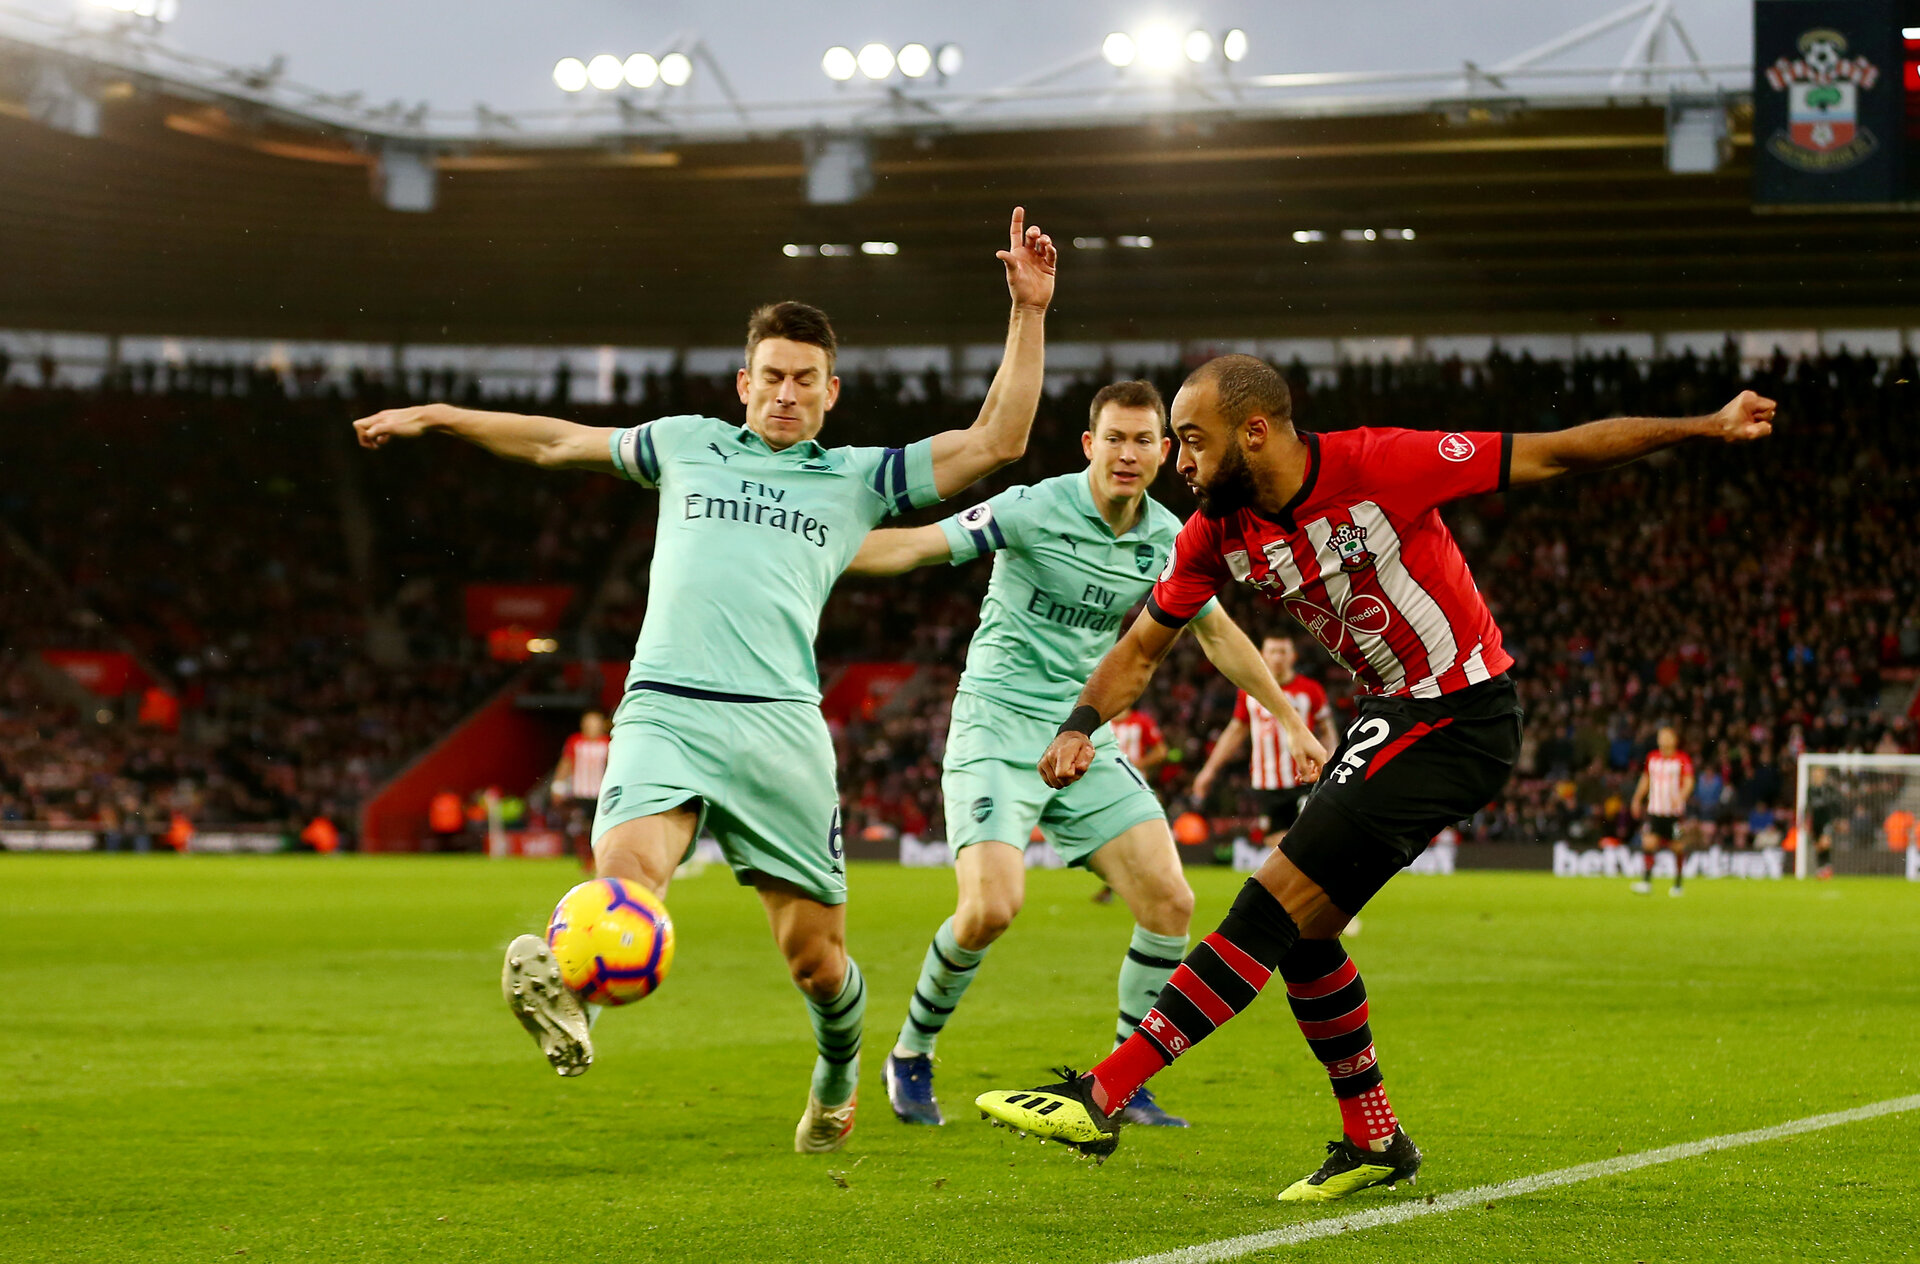 SOUTHAMPTON, ENGLAND - DECEMBER 16: Nathan Redmond of Southampton during the Premier League match between Southampton FC and Arsenal FC at St Mary's Stadium on December 15, 2018 in Southampton, United Kingdom. (Photo by Matt Watson/Southampton FC via Getty Images)